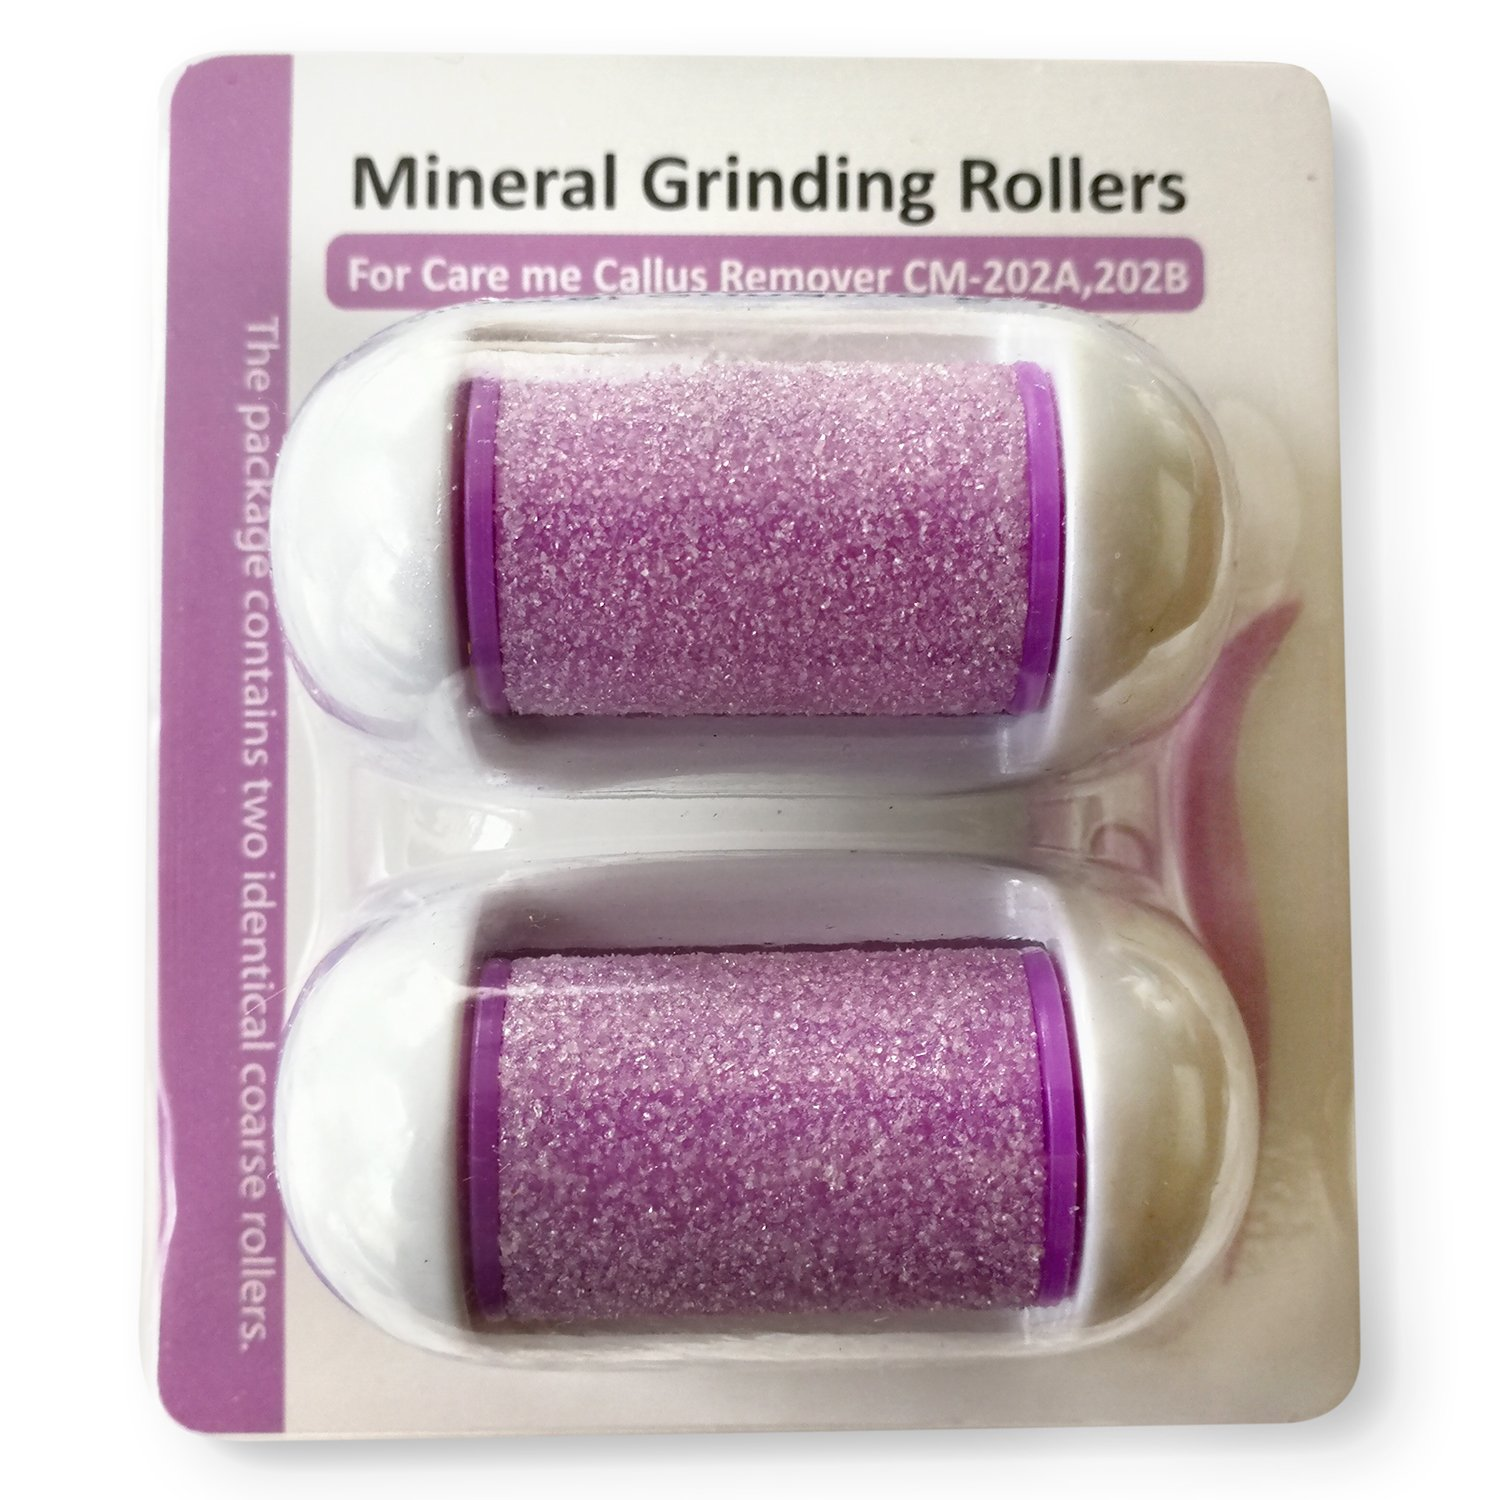 Replacement Rollers for Care me Rechargeable Callus Remover (Model# CM202) - Effectively Removes Hard and Cracked Skin and Calluses on Feet - a Pack of 2 (purple)